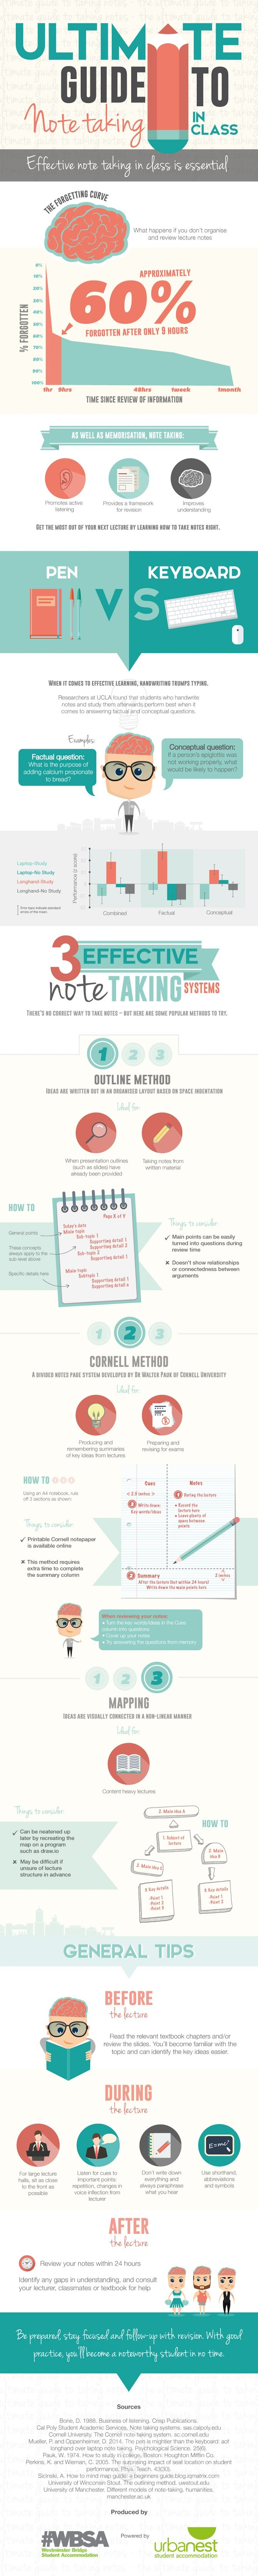 The Best Infographics of 2015 (So Far) - Notetaking in a class #Infographic